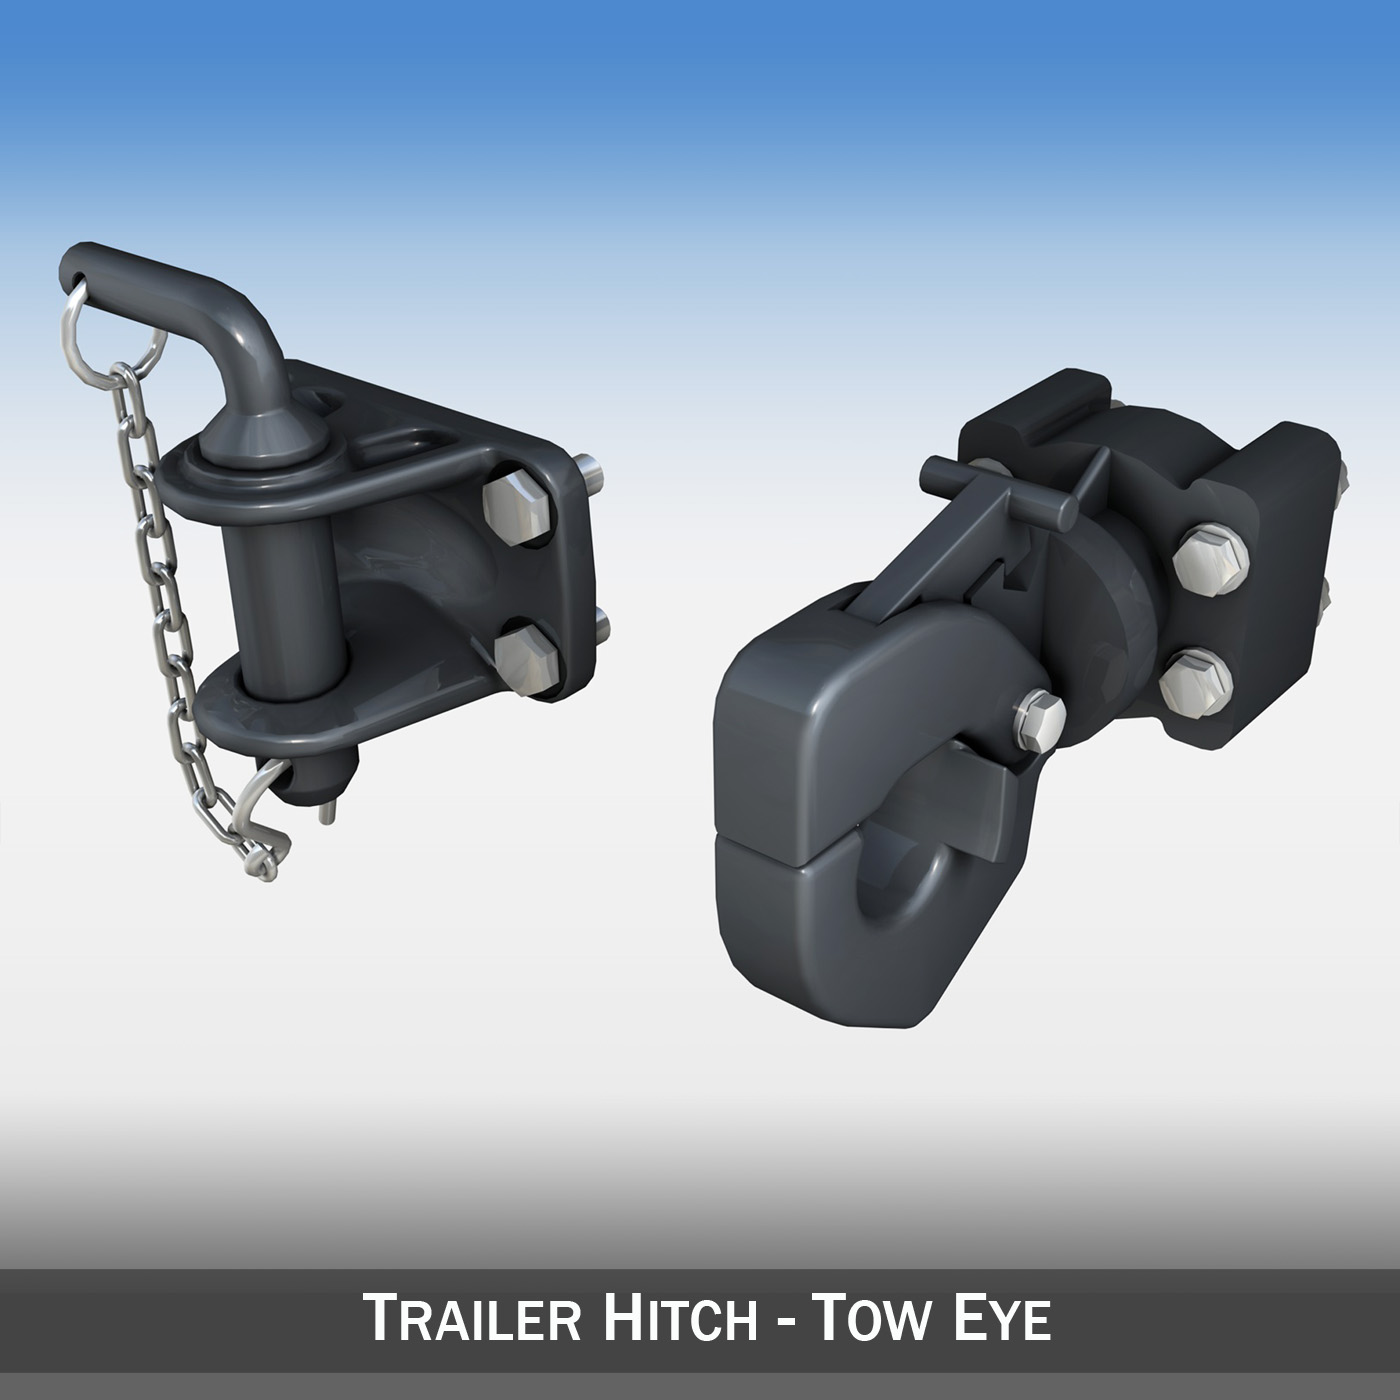 trailer hitch – tow eye 3d model 3ds fbx c4d lwo obj 187223